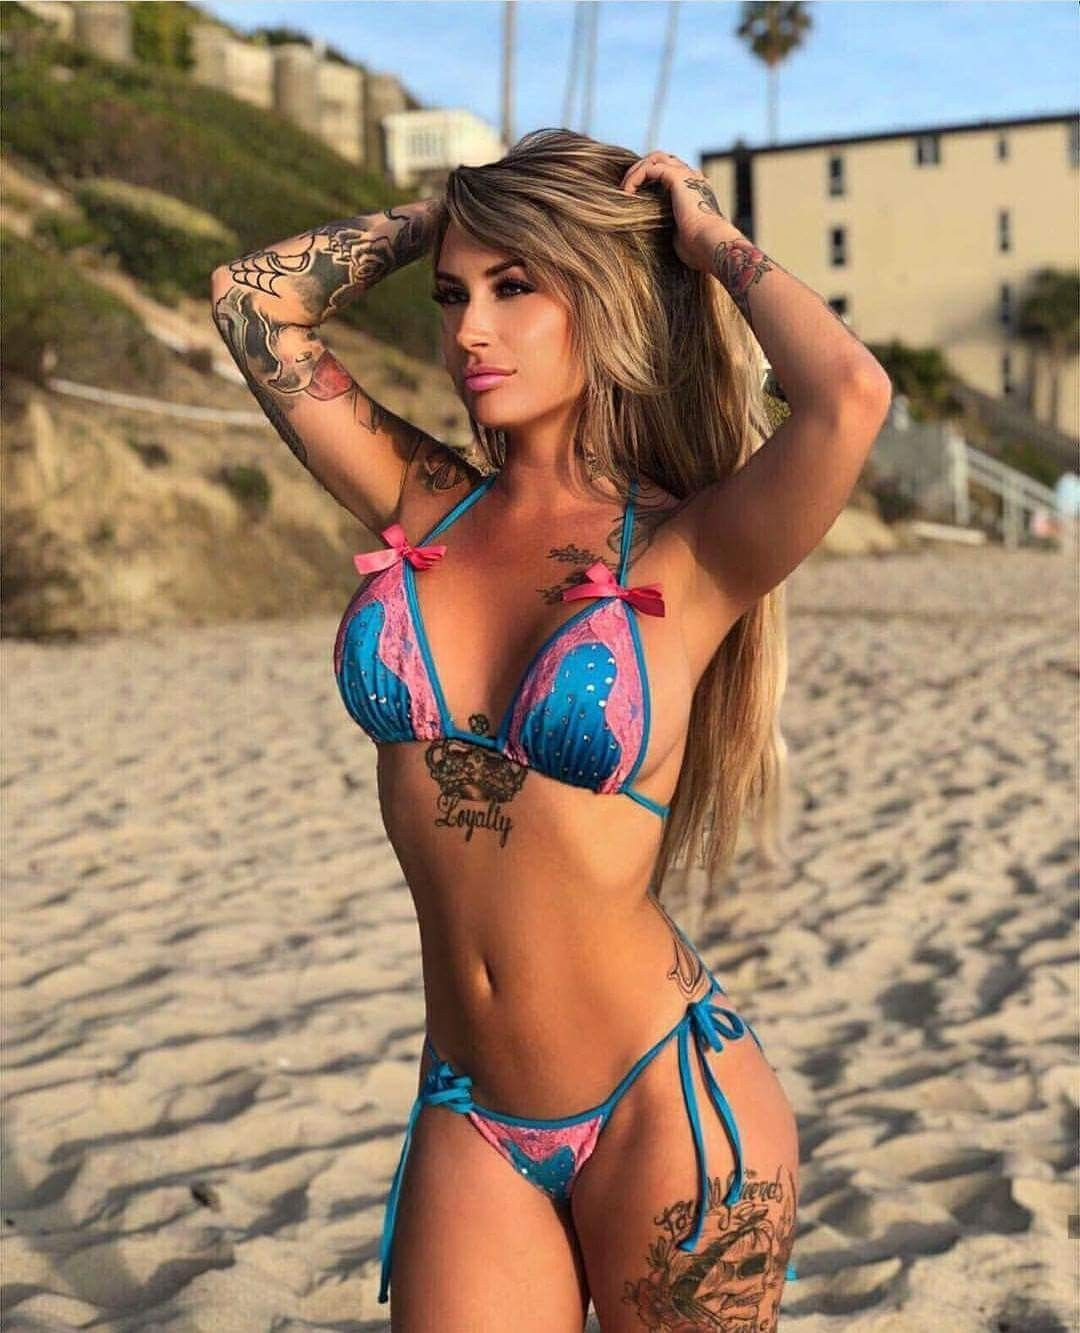 b95201f03258 Beautiful | Masterpiece in 2019 | Bikini girls, Bikinis, Bikini models